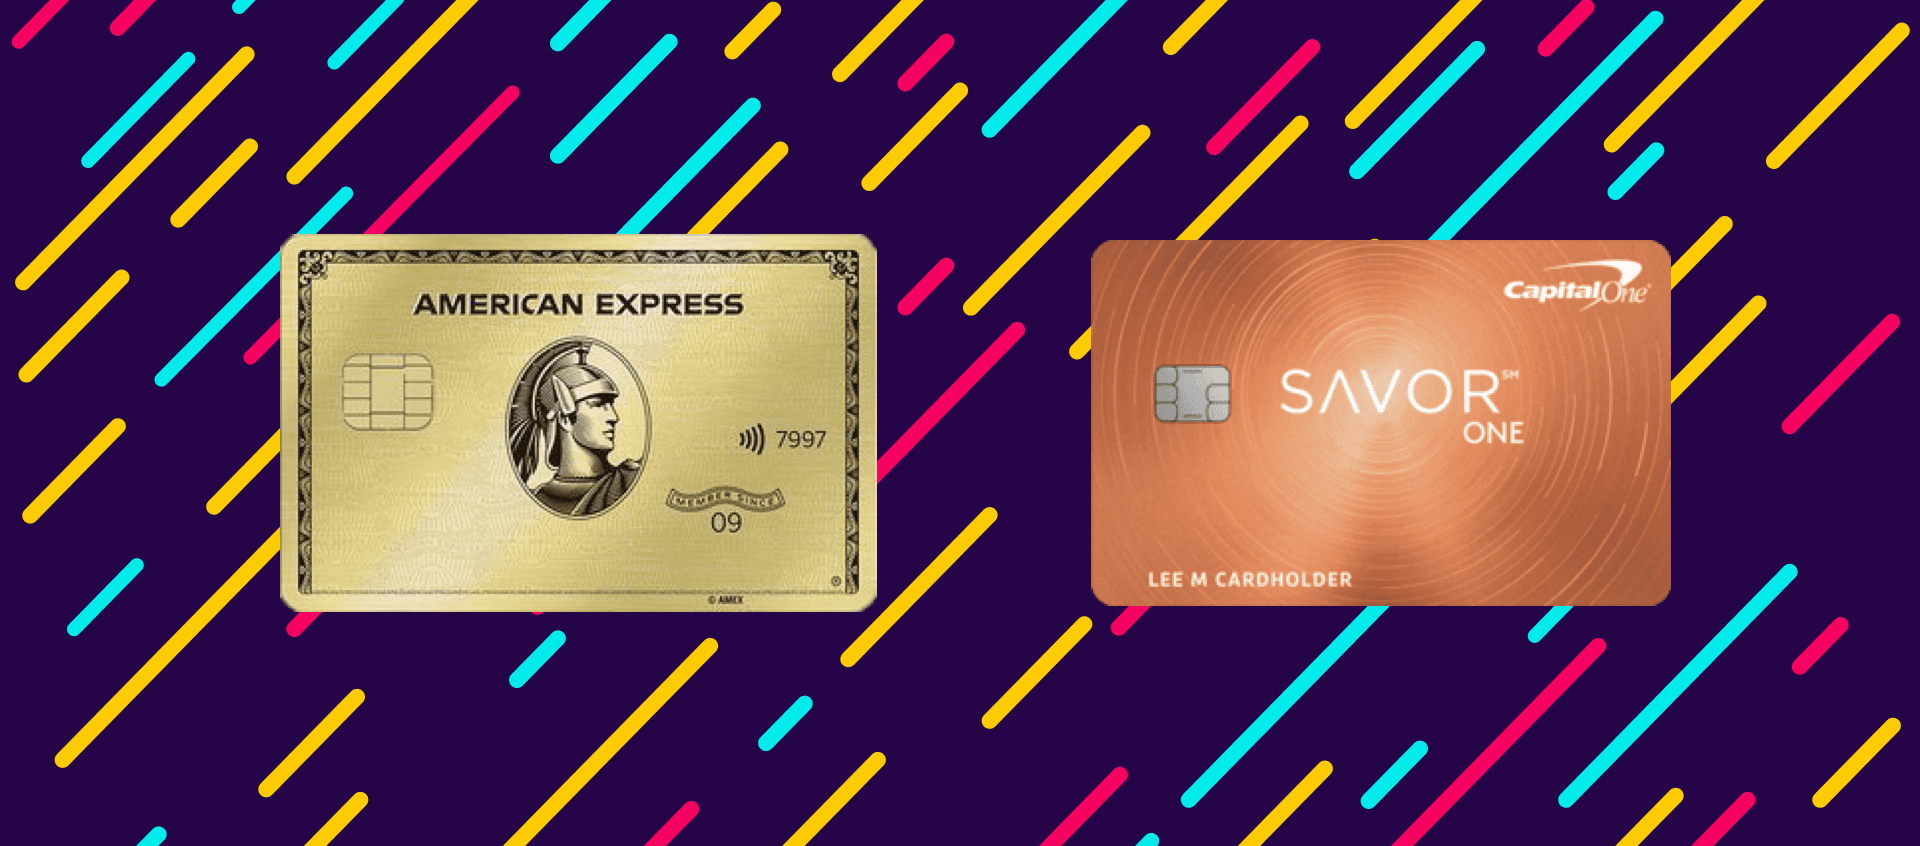 2 Current Increased Credit Card Offers Worth Considering